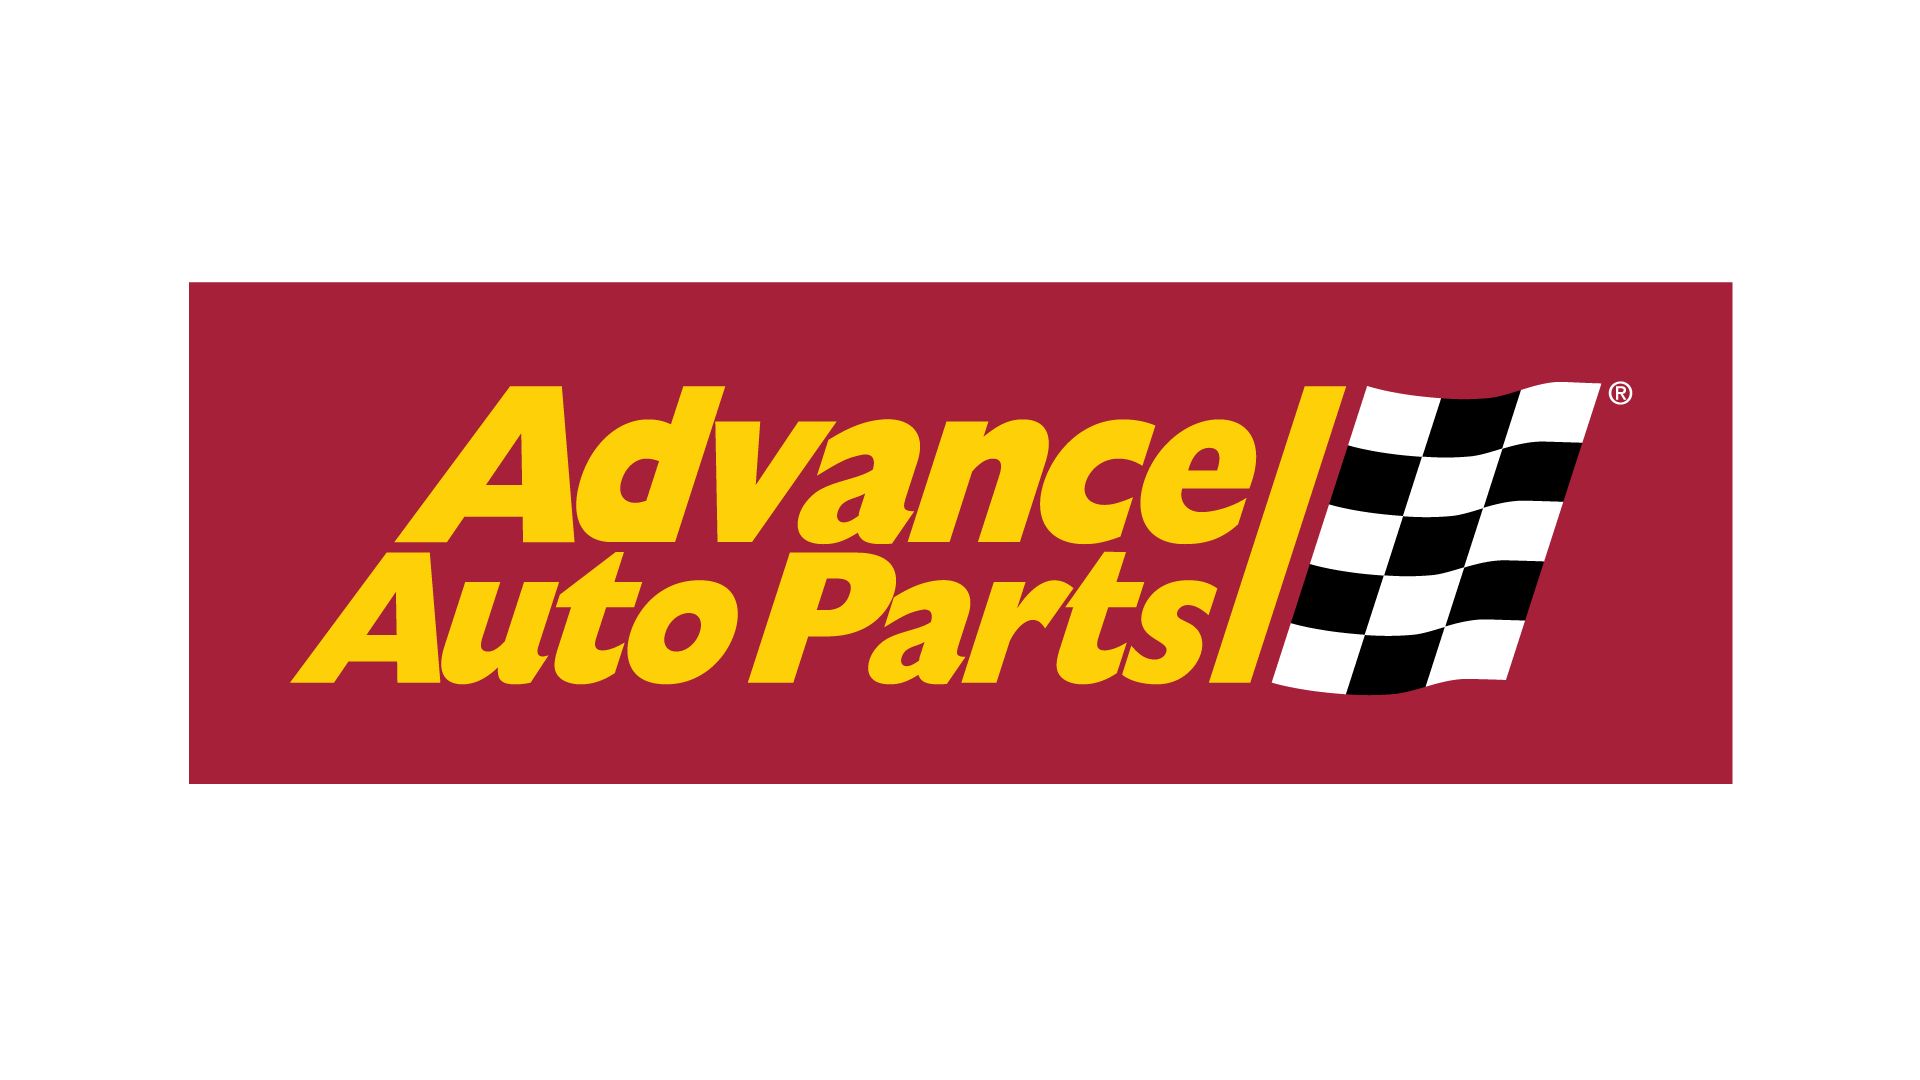 Advance Auto Speed Perks >> Advance Auto Parts Coupons – Online Coupon Codes, Promo Codes & Special Offers – CouponMom